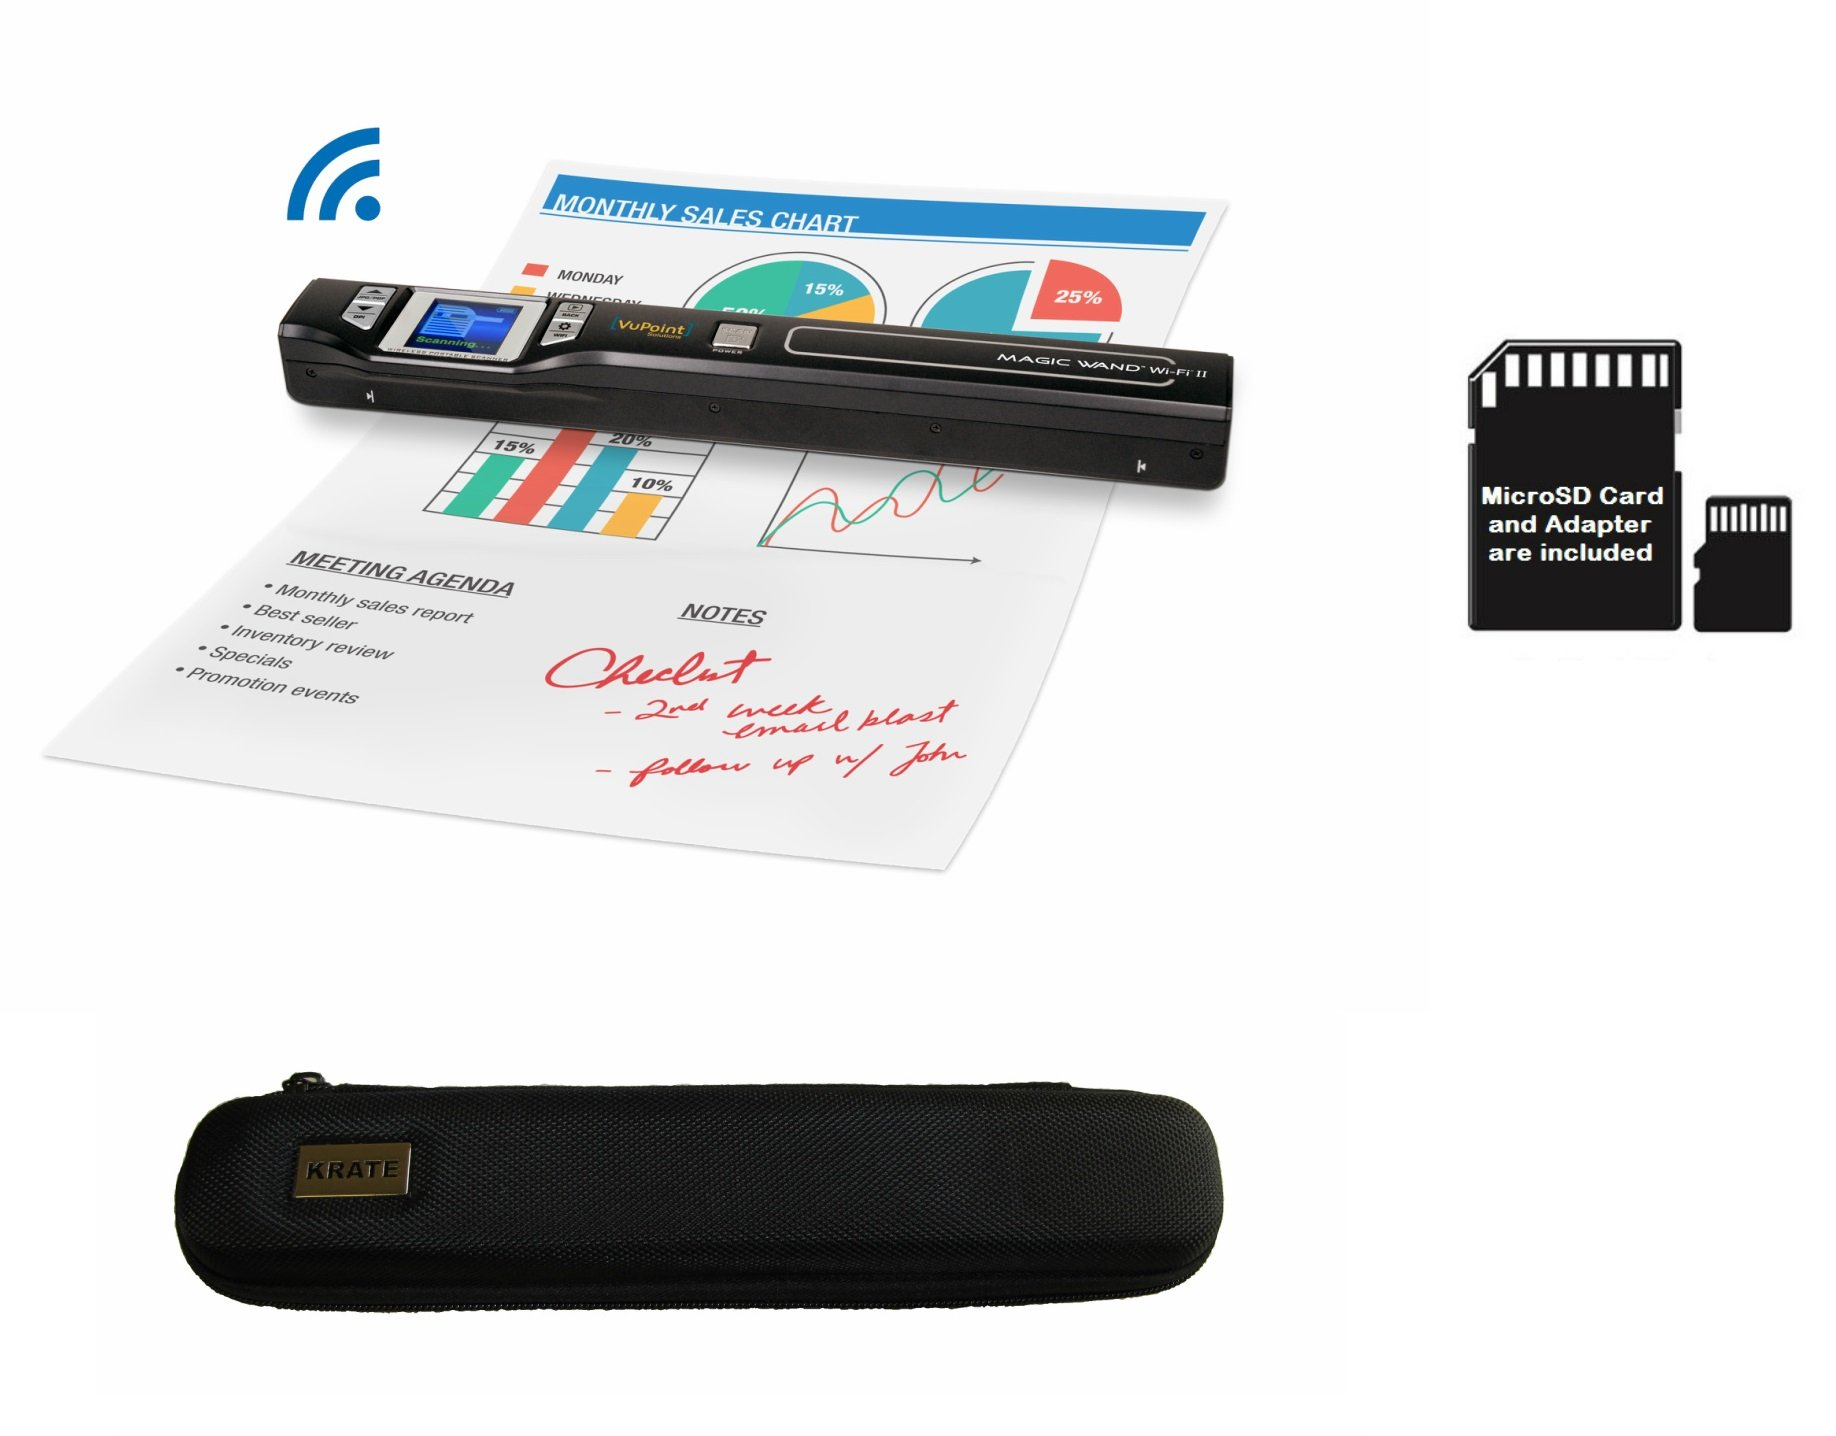 VuPoint ST47 Magic Wand Wireless Portable Scanner with Wi-Fi + 8GB MicroSD Card + Protective Carrying Case, JPEG/PDF, Color/Mono, 1.5 LCD, 1050 DPI, Document, Photo, Receipts (Black)